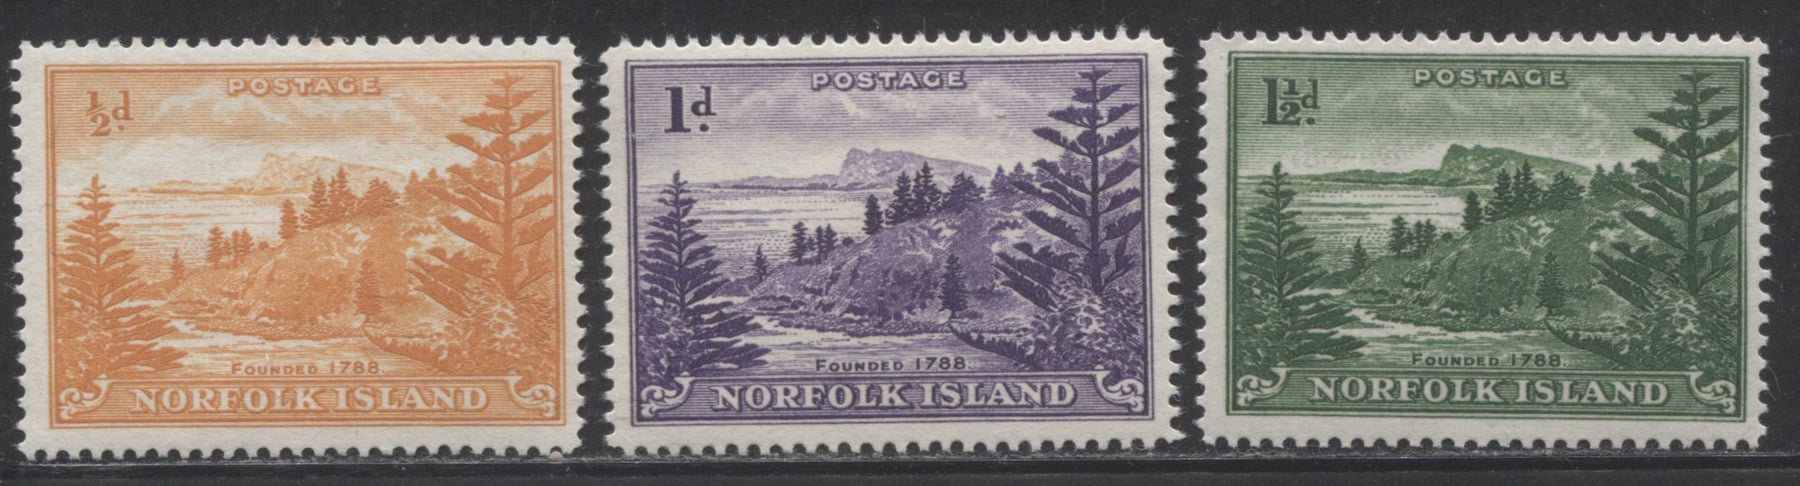 Norfolk Island #1-3 (SG1a-3a) 1/2d Orange - 1.5d Green, 1947-1959 Ball Bay Definitive Issue, F-VF NH Mint Examples of the White Paper Printings